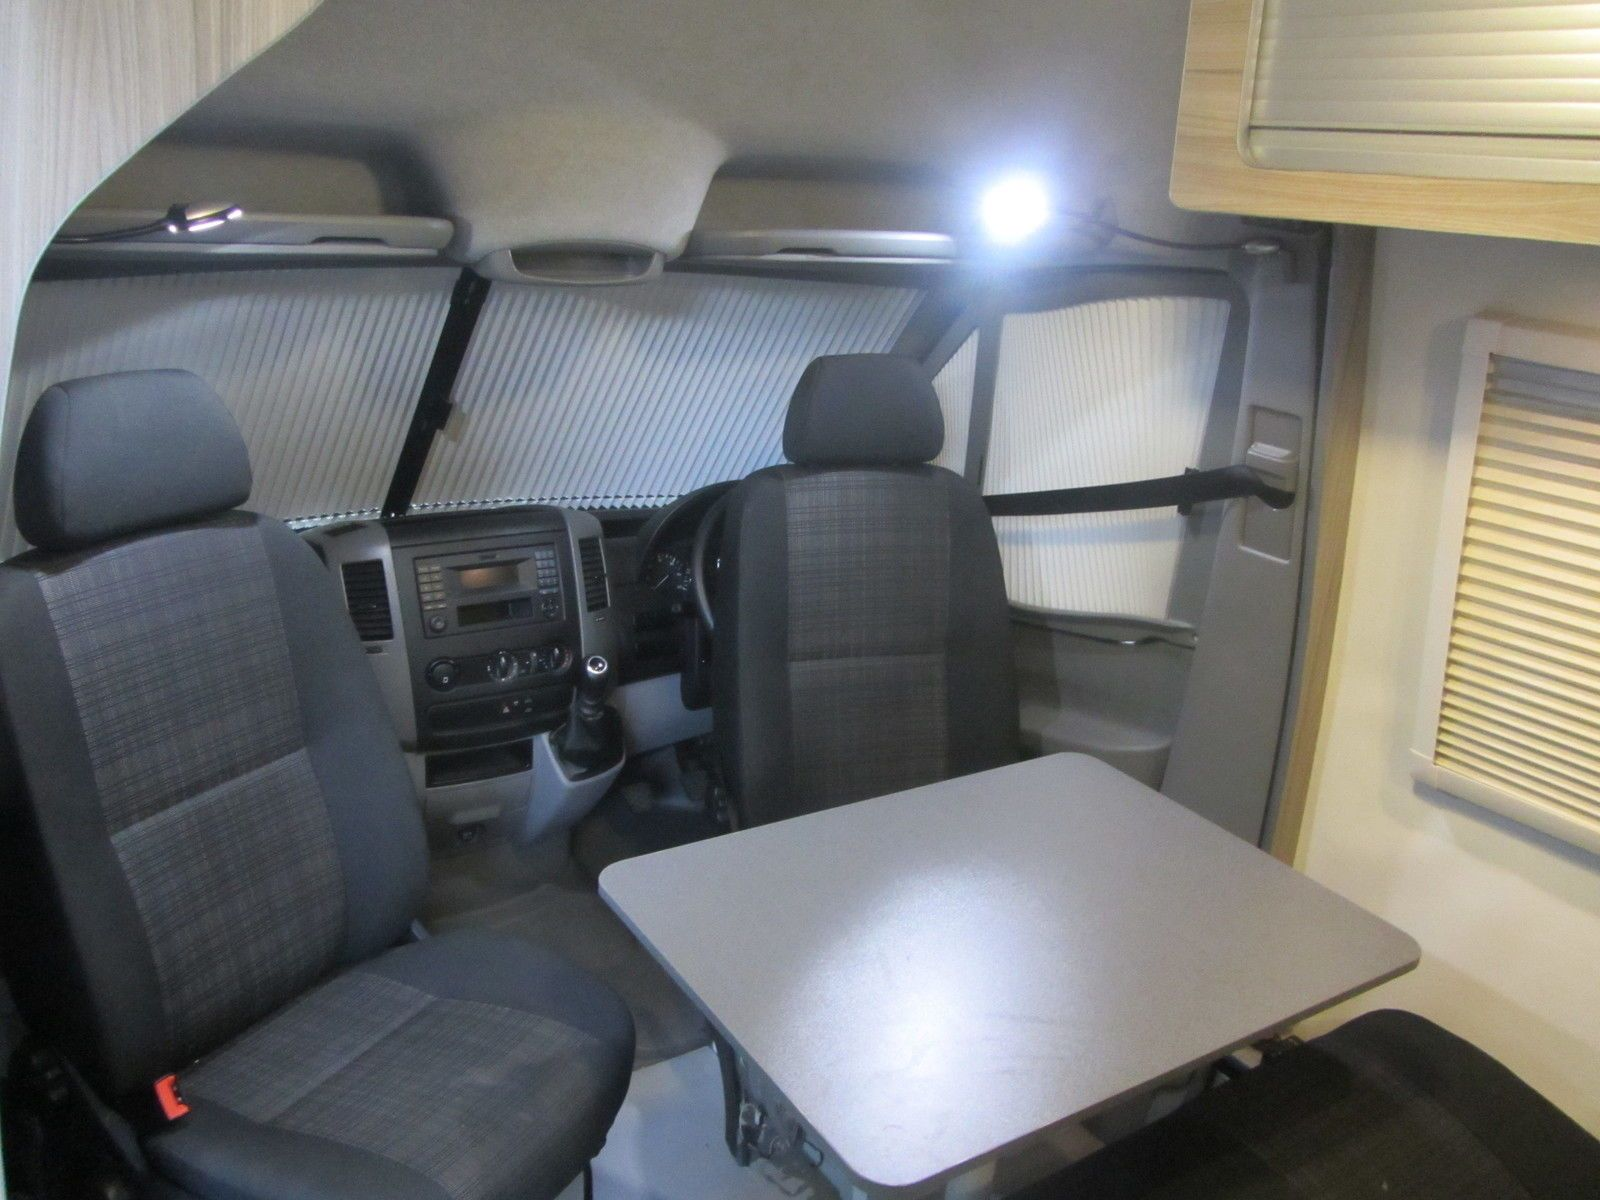 Mercedes Sprinter 313 CDI Sportshome Camper Van Conversion Race 4 Berth